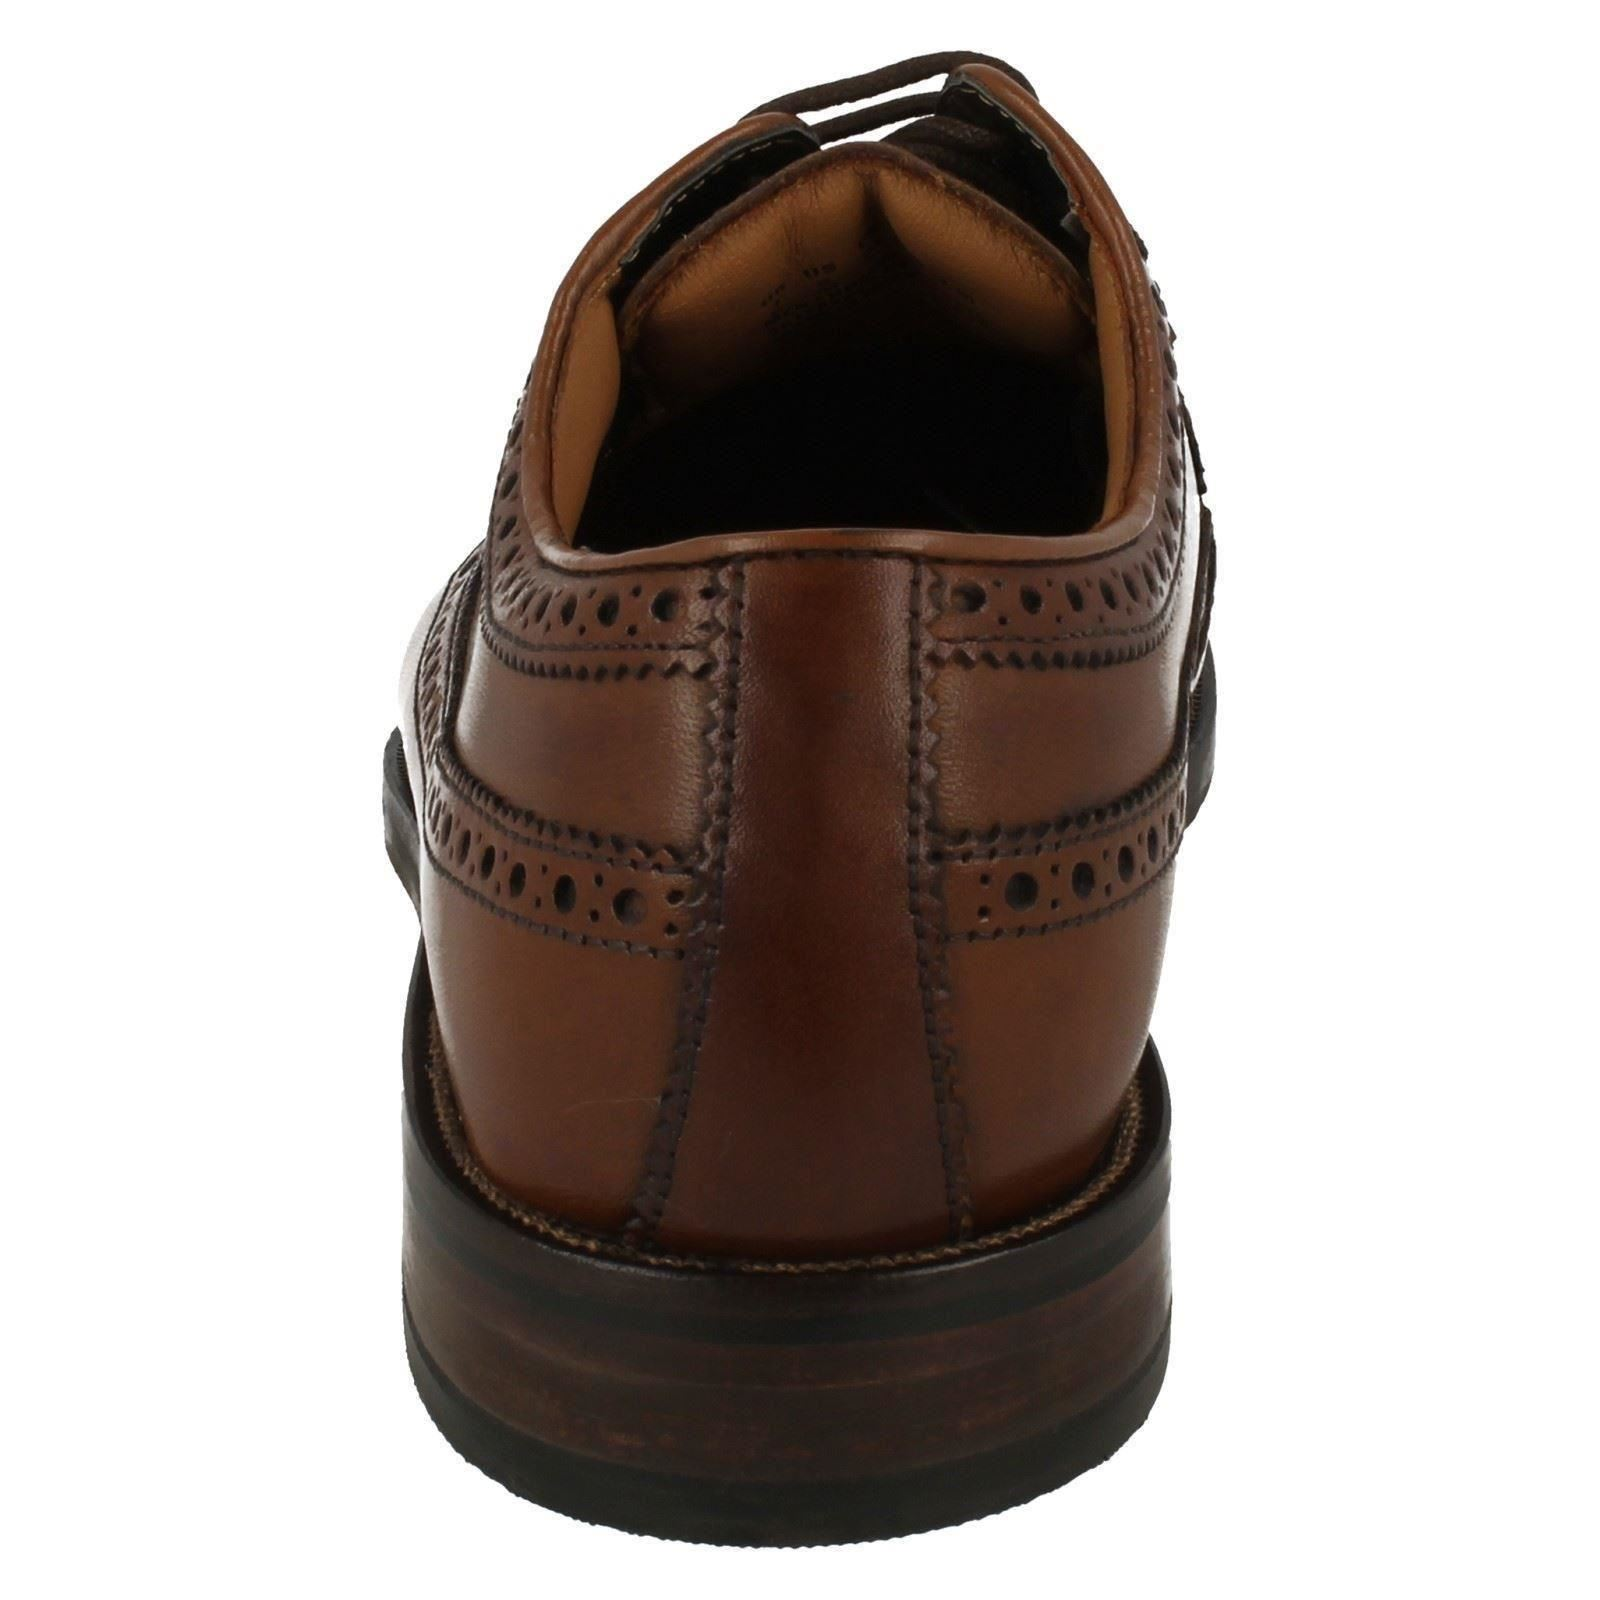 Mens Clarks Brogue Style Lace Up Shoes Coling Limit